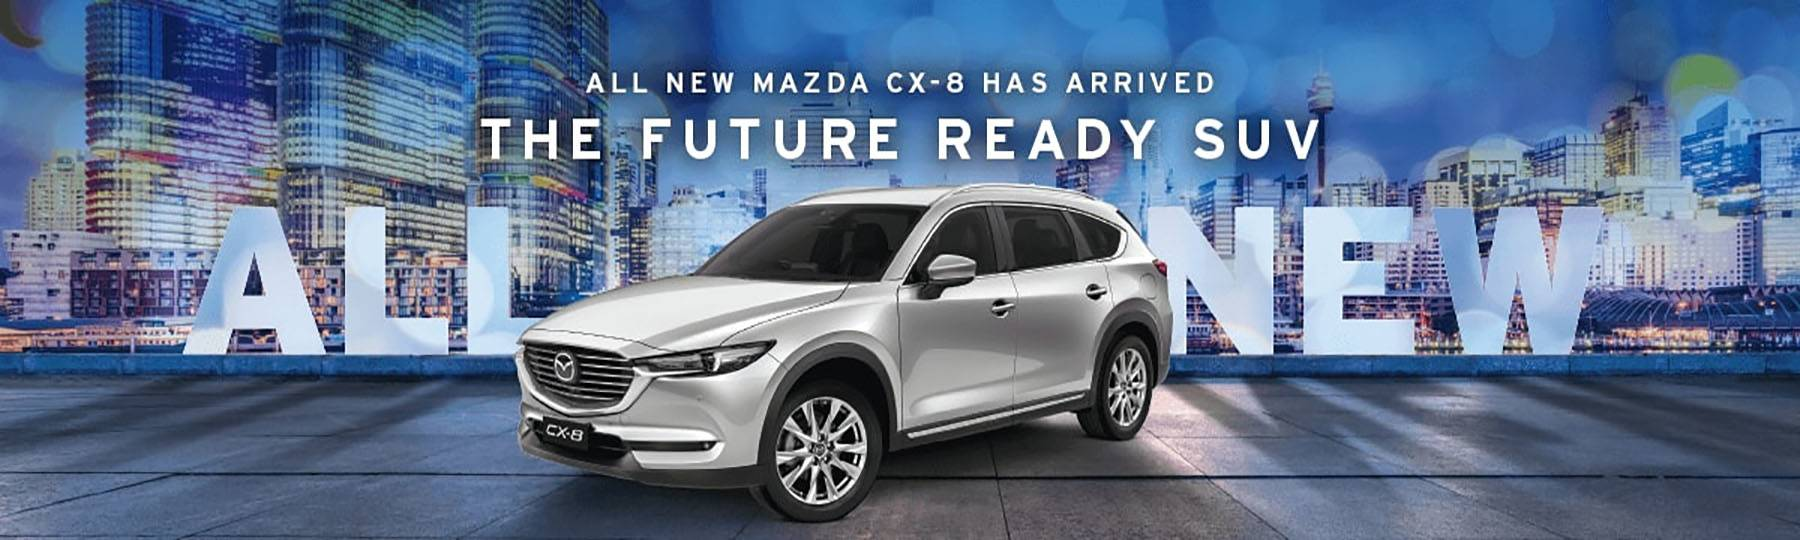 All-New CX-8